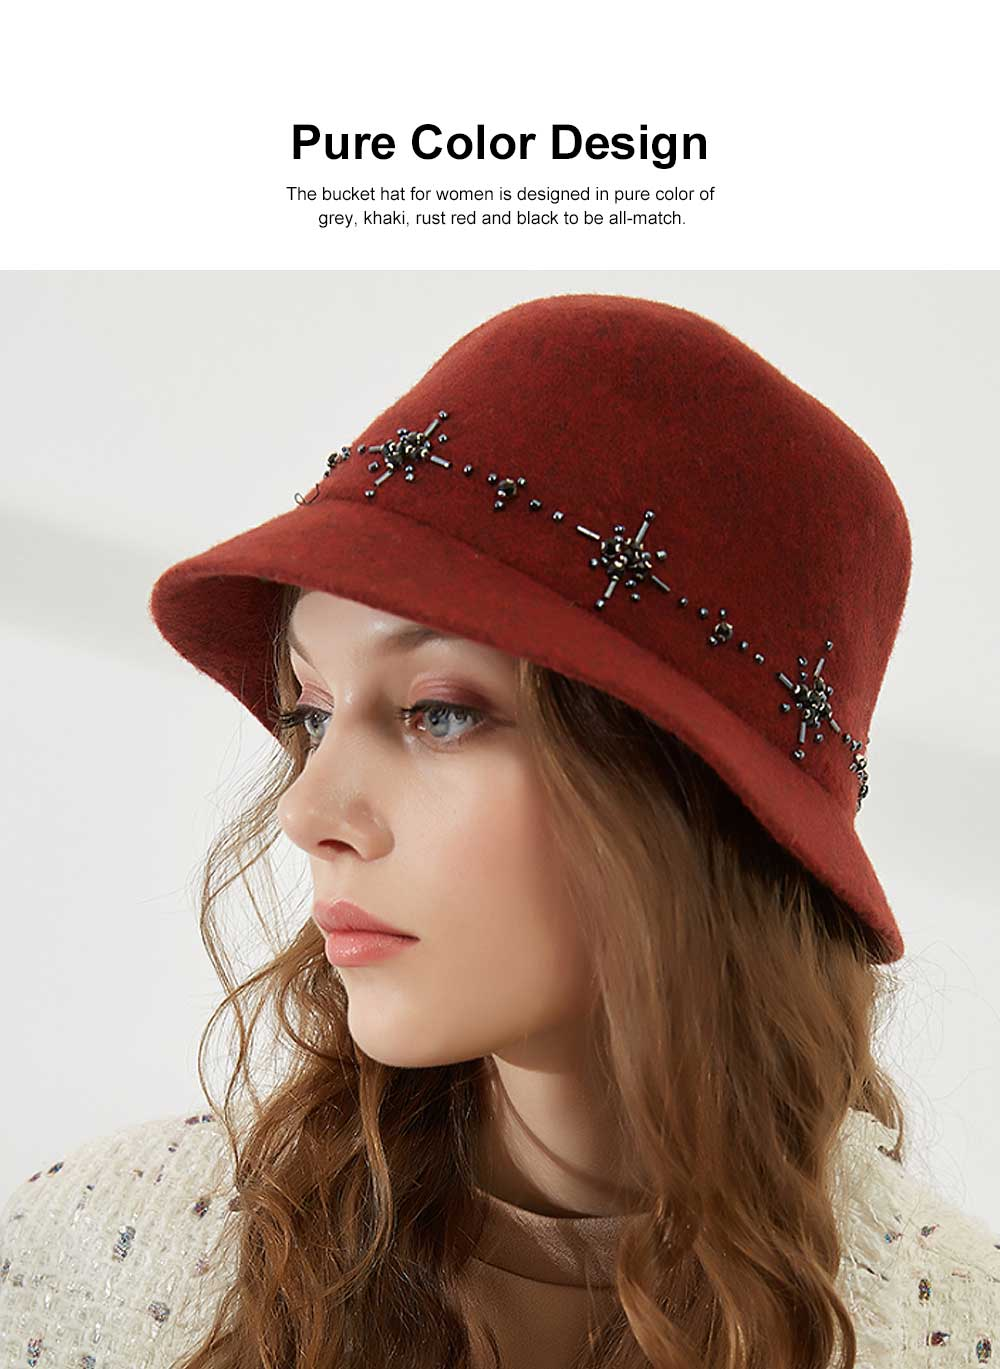 British Style Thermal Bucket Hat for Women Autumn Winter Wool-made Vintage Top Hat Round Top Revers Bowler Hat 3